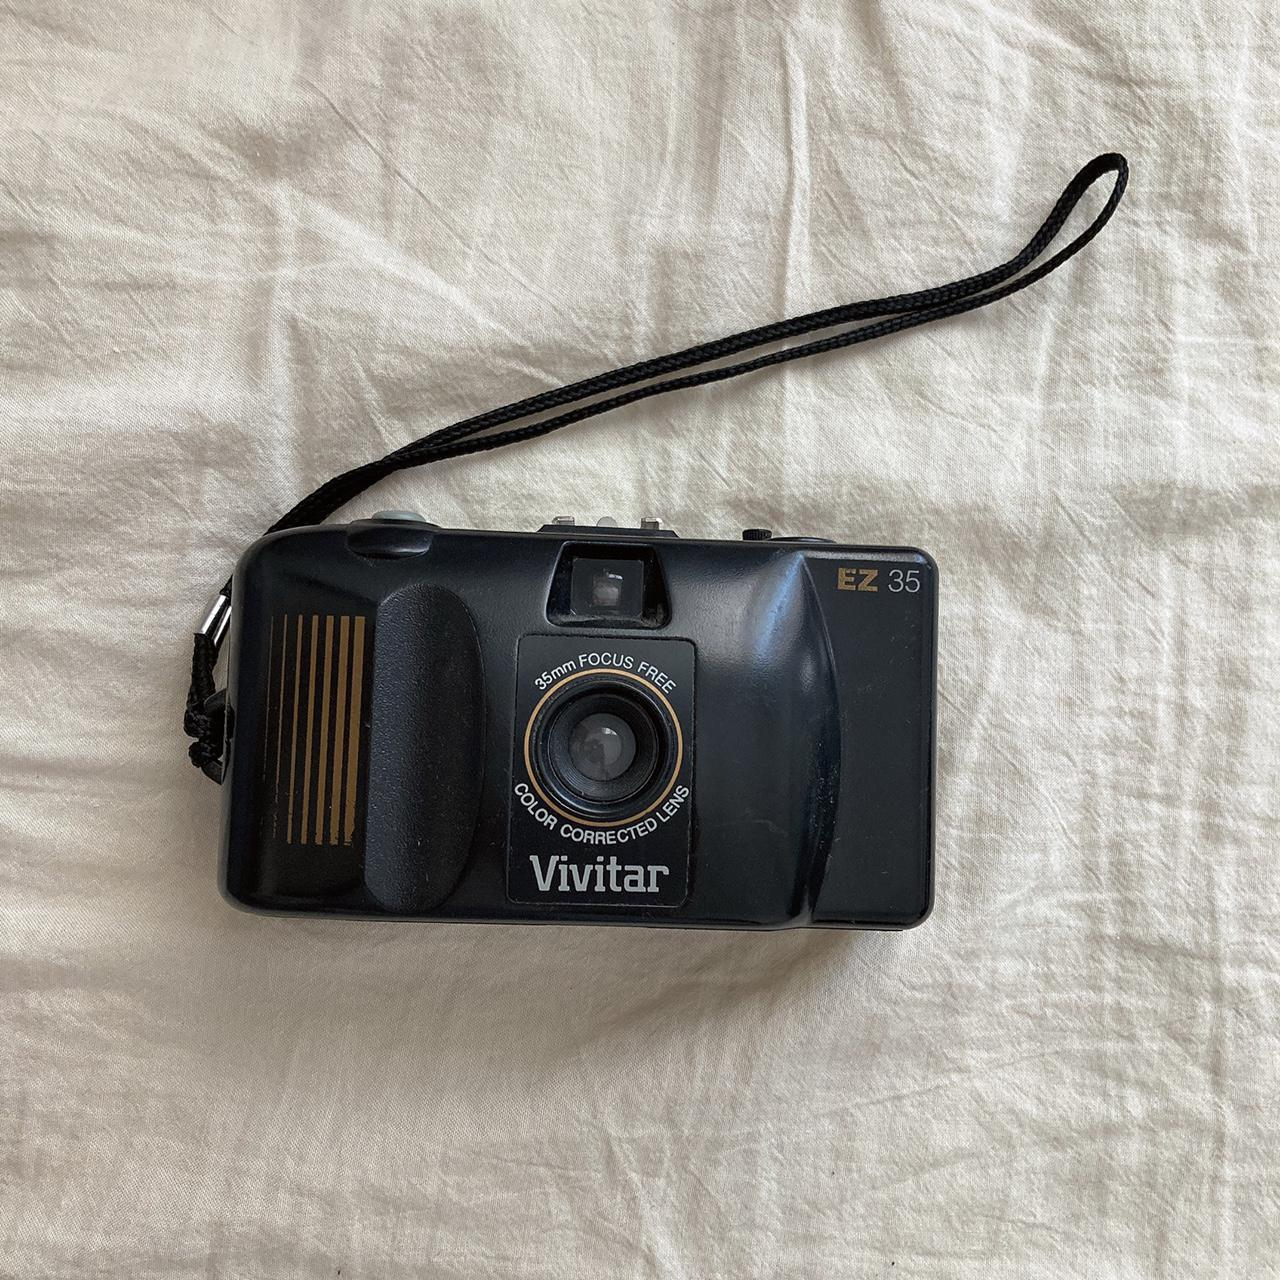 Product Image 1 - Vivitar EZ 35 point and